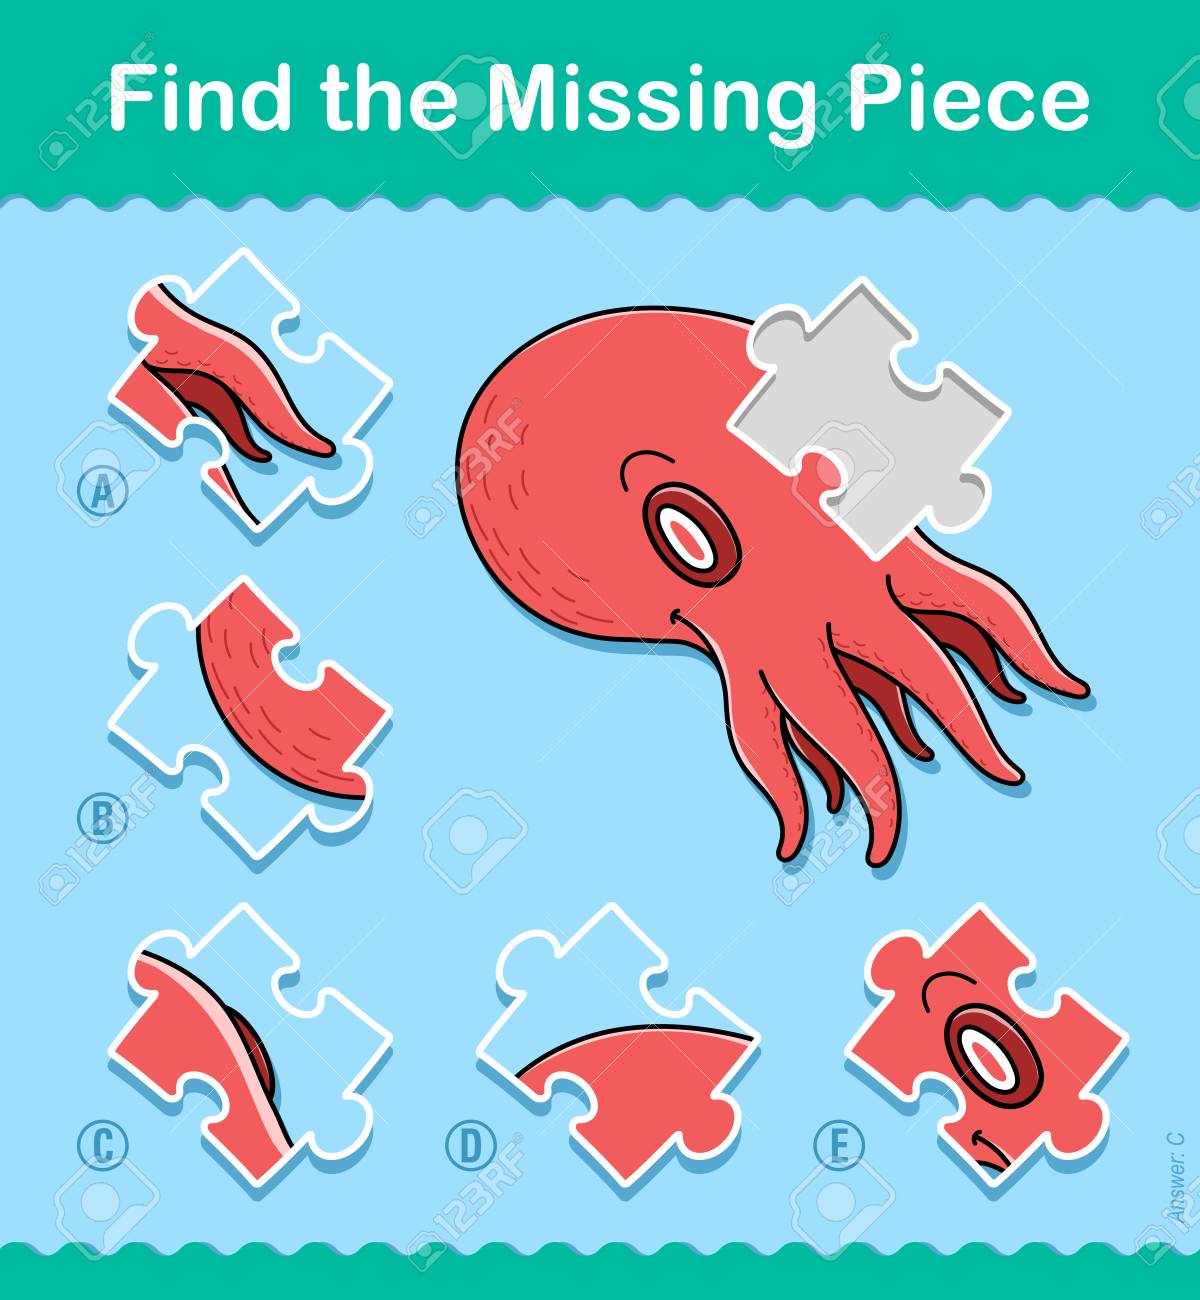 Find The Missing Part Kids Educational Jigsaw Puzzle Game With A Colorful Red Octopus Swimming Underwater